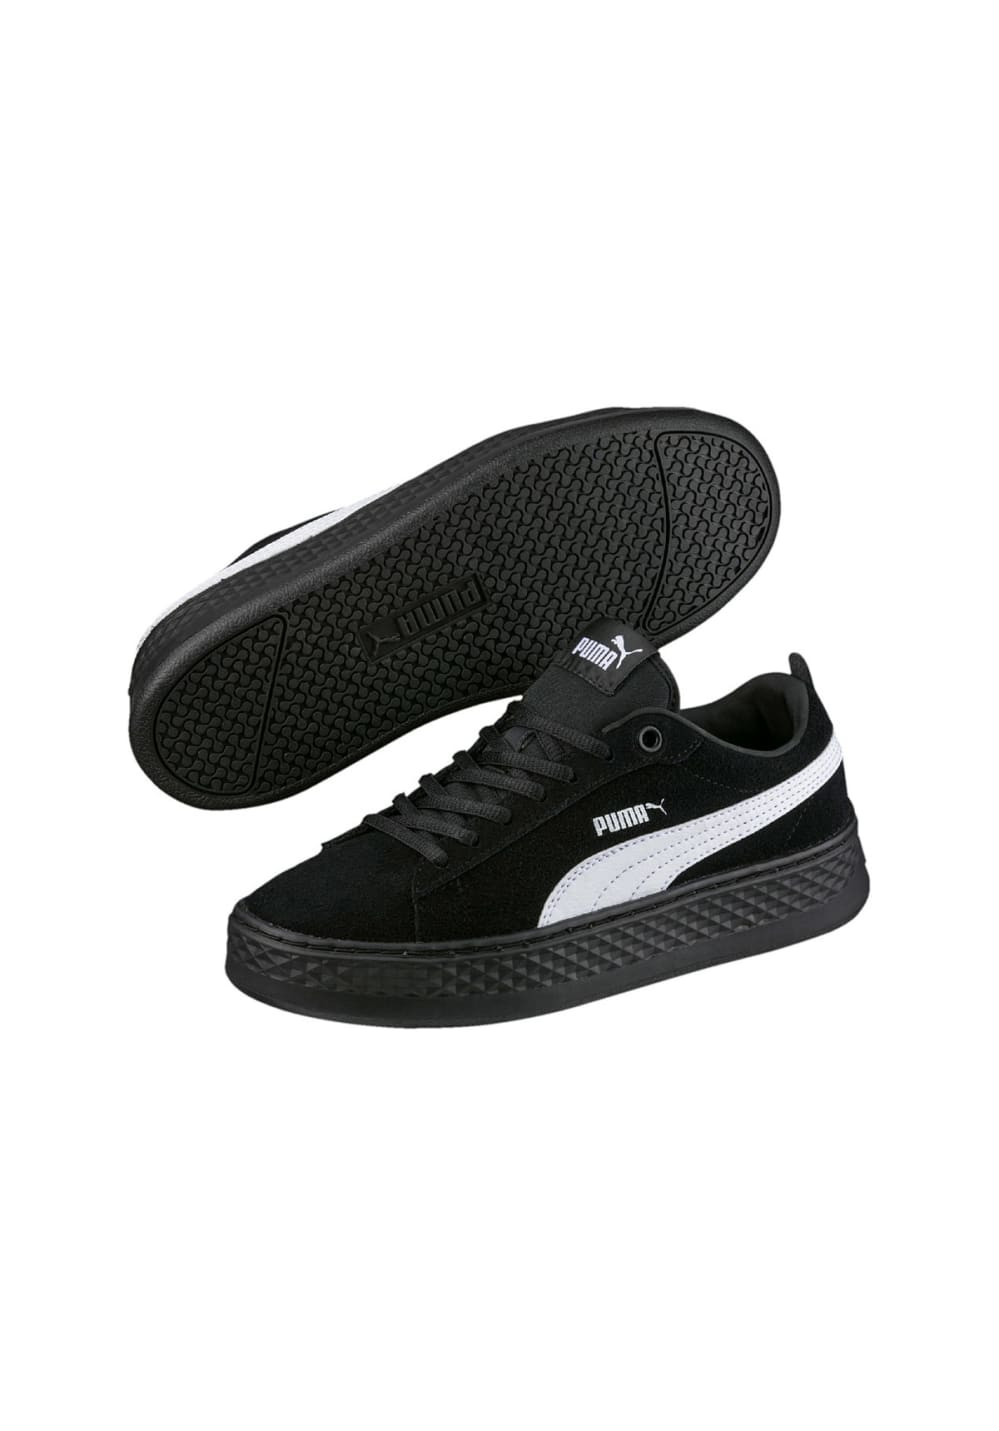 d033b37dfc3 ... Puma Smash Platform Sd - Sneaker for Women - Black. Back to Overview.  -60%